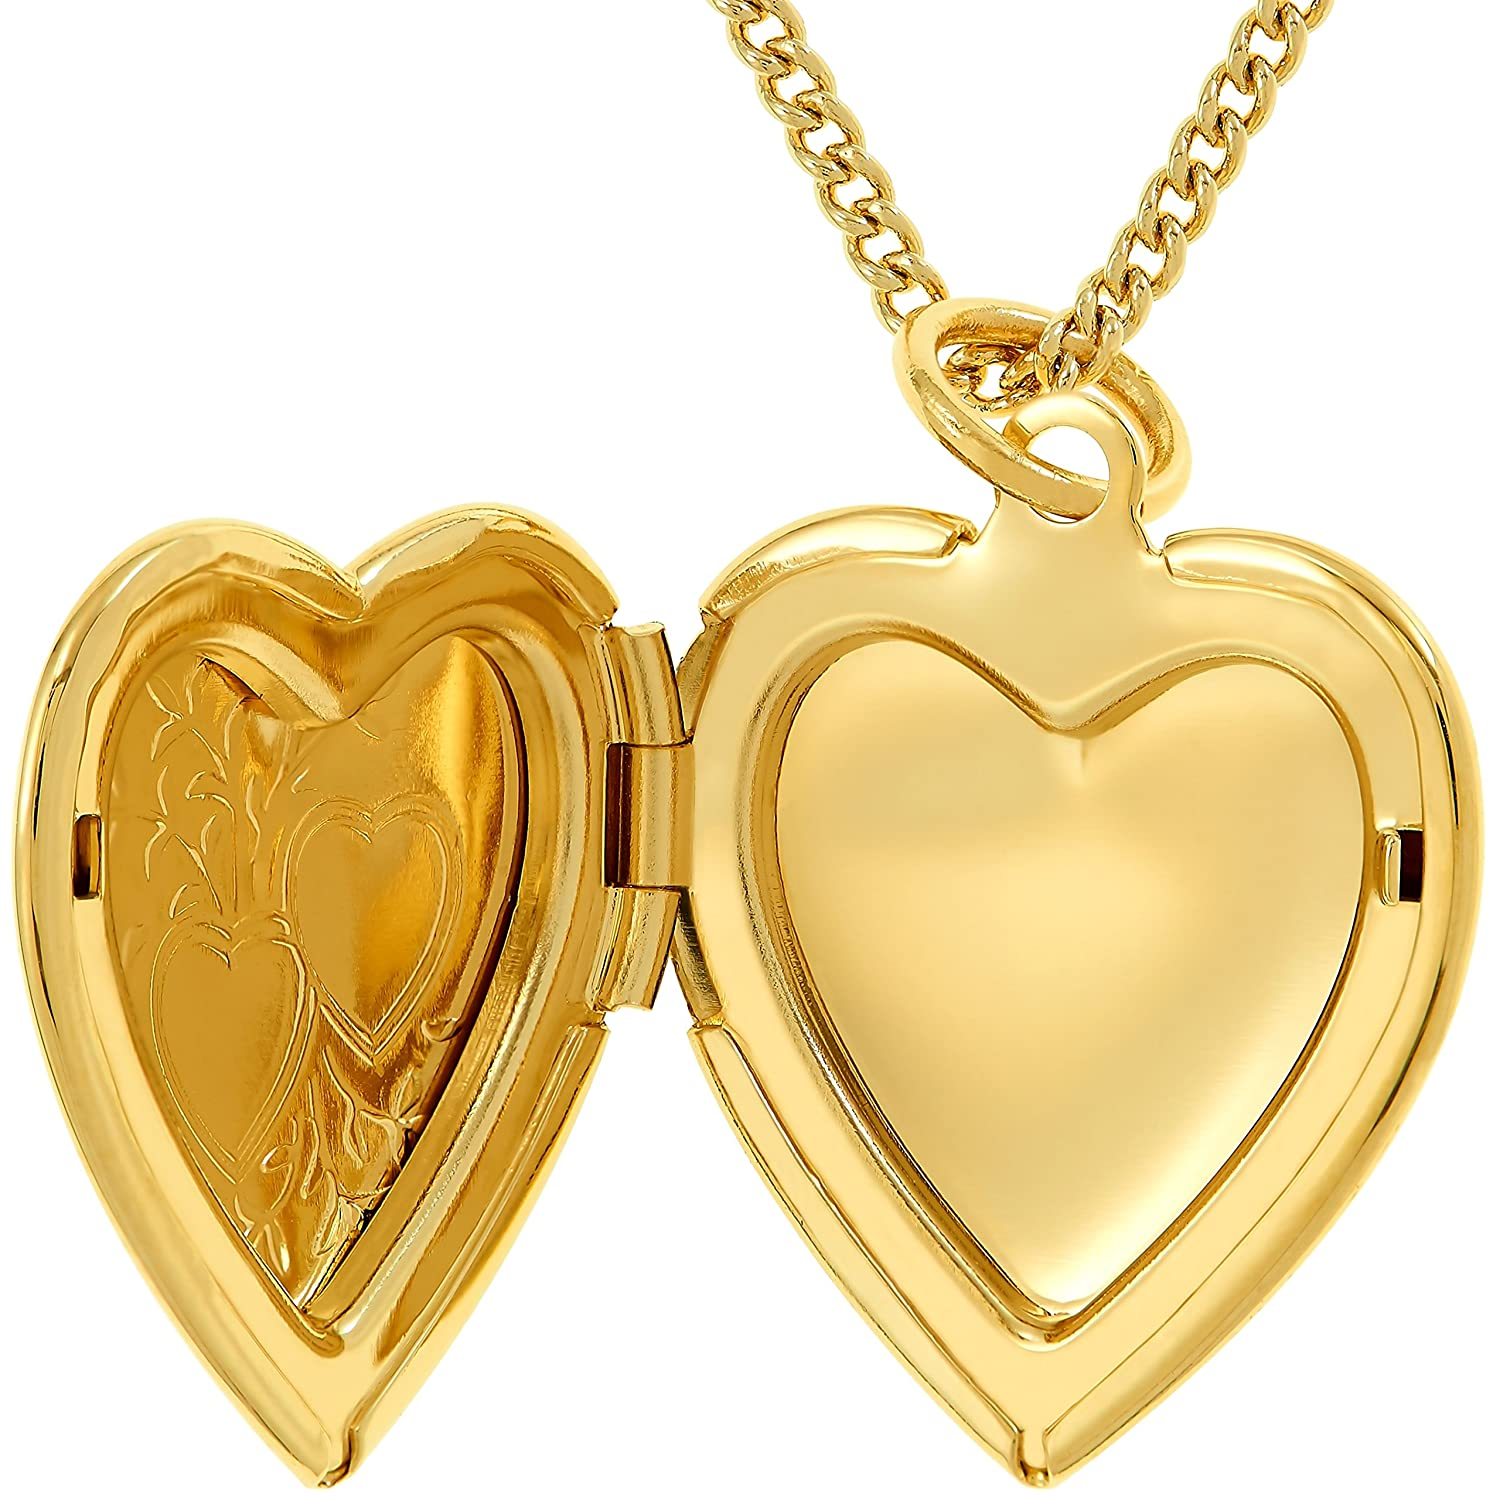 m pendant large hei tiffany gold in necklaces heart locket g ed lockets jewelry fmt initial wid co fit pendants constrain rose id